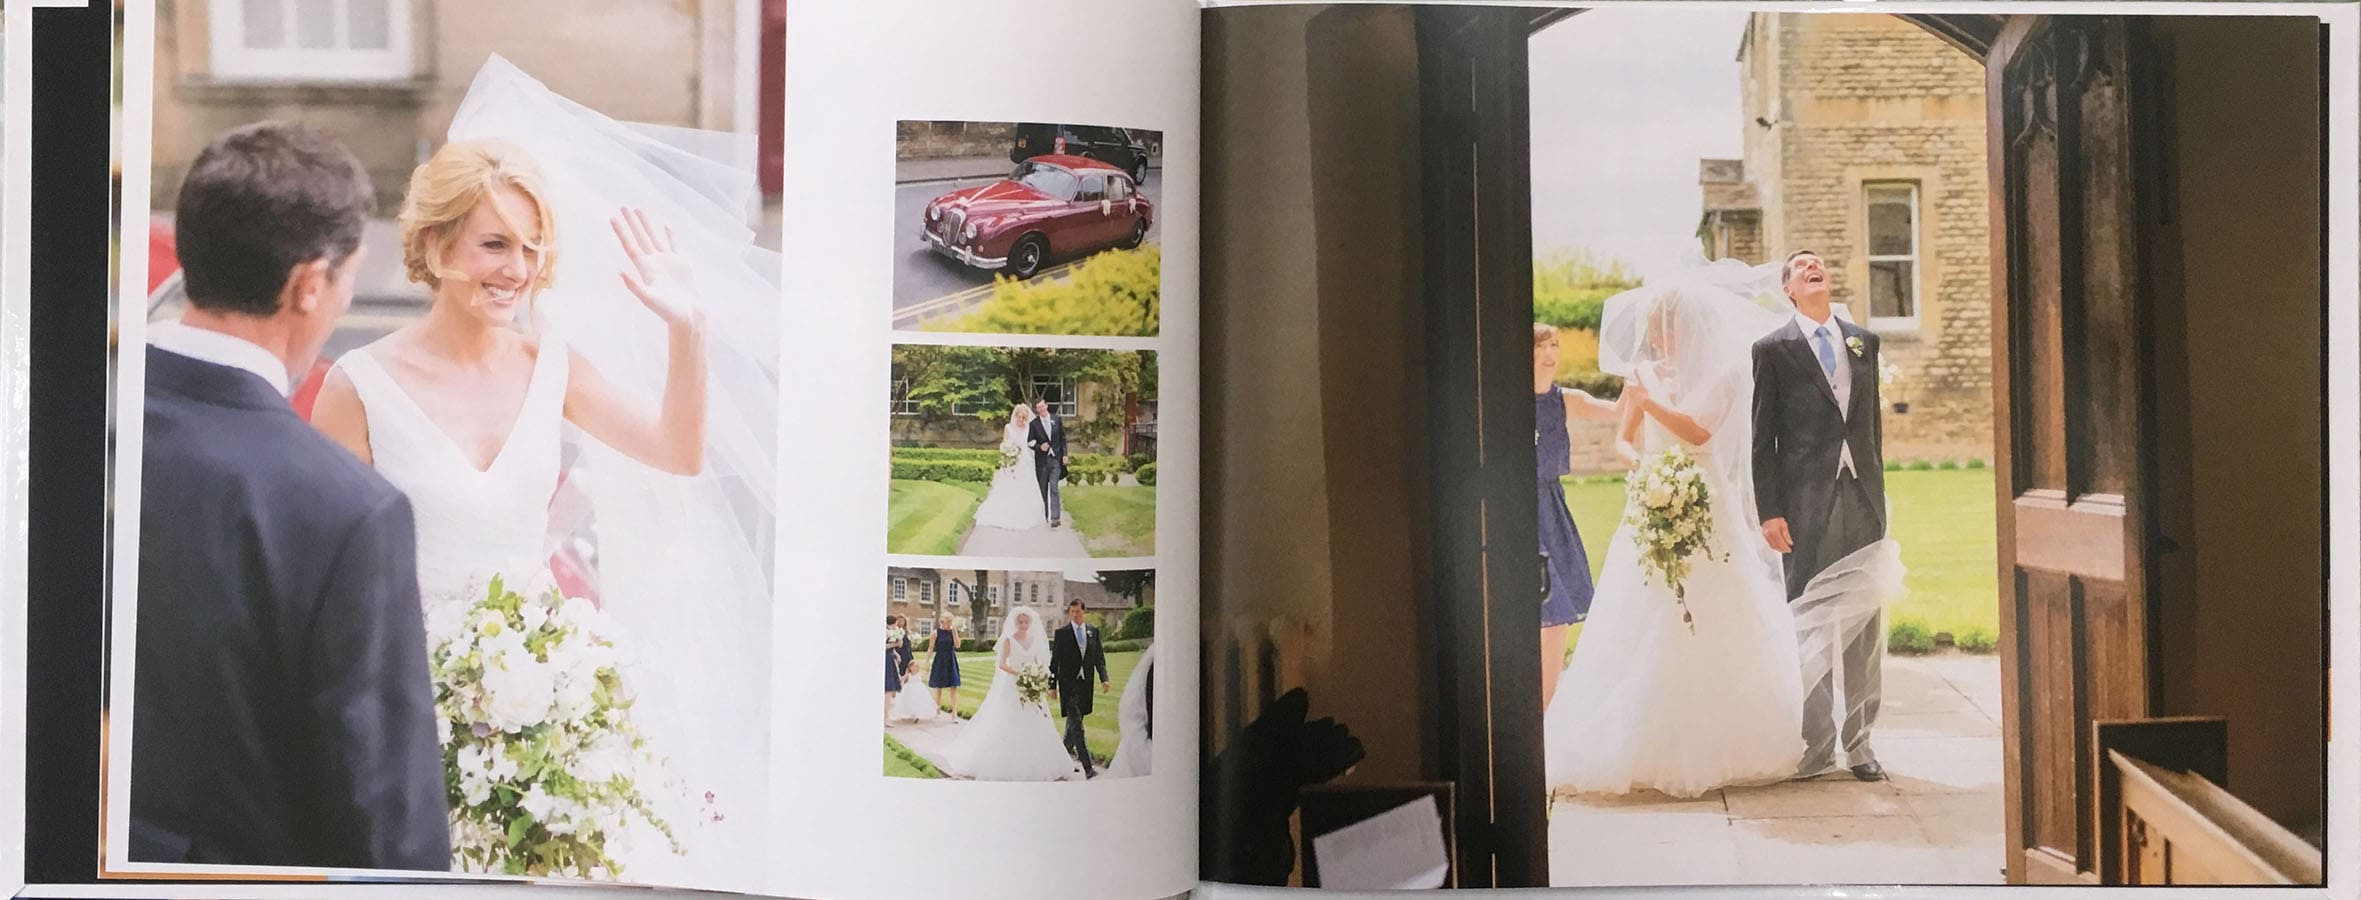 Photobook-wedding4